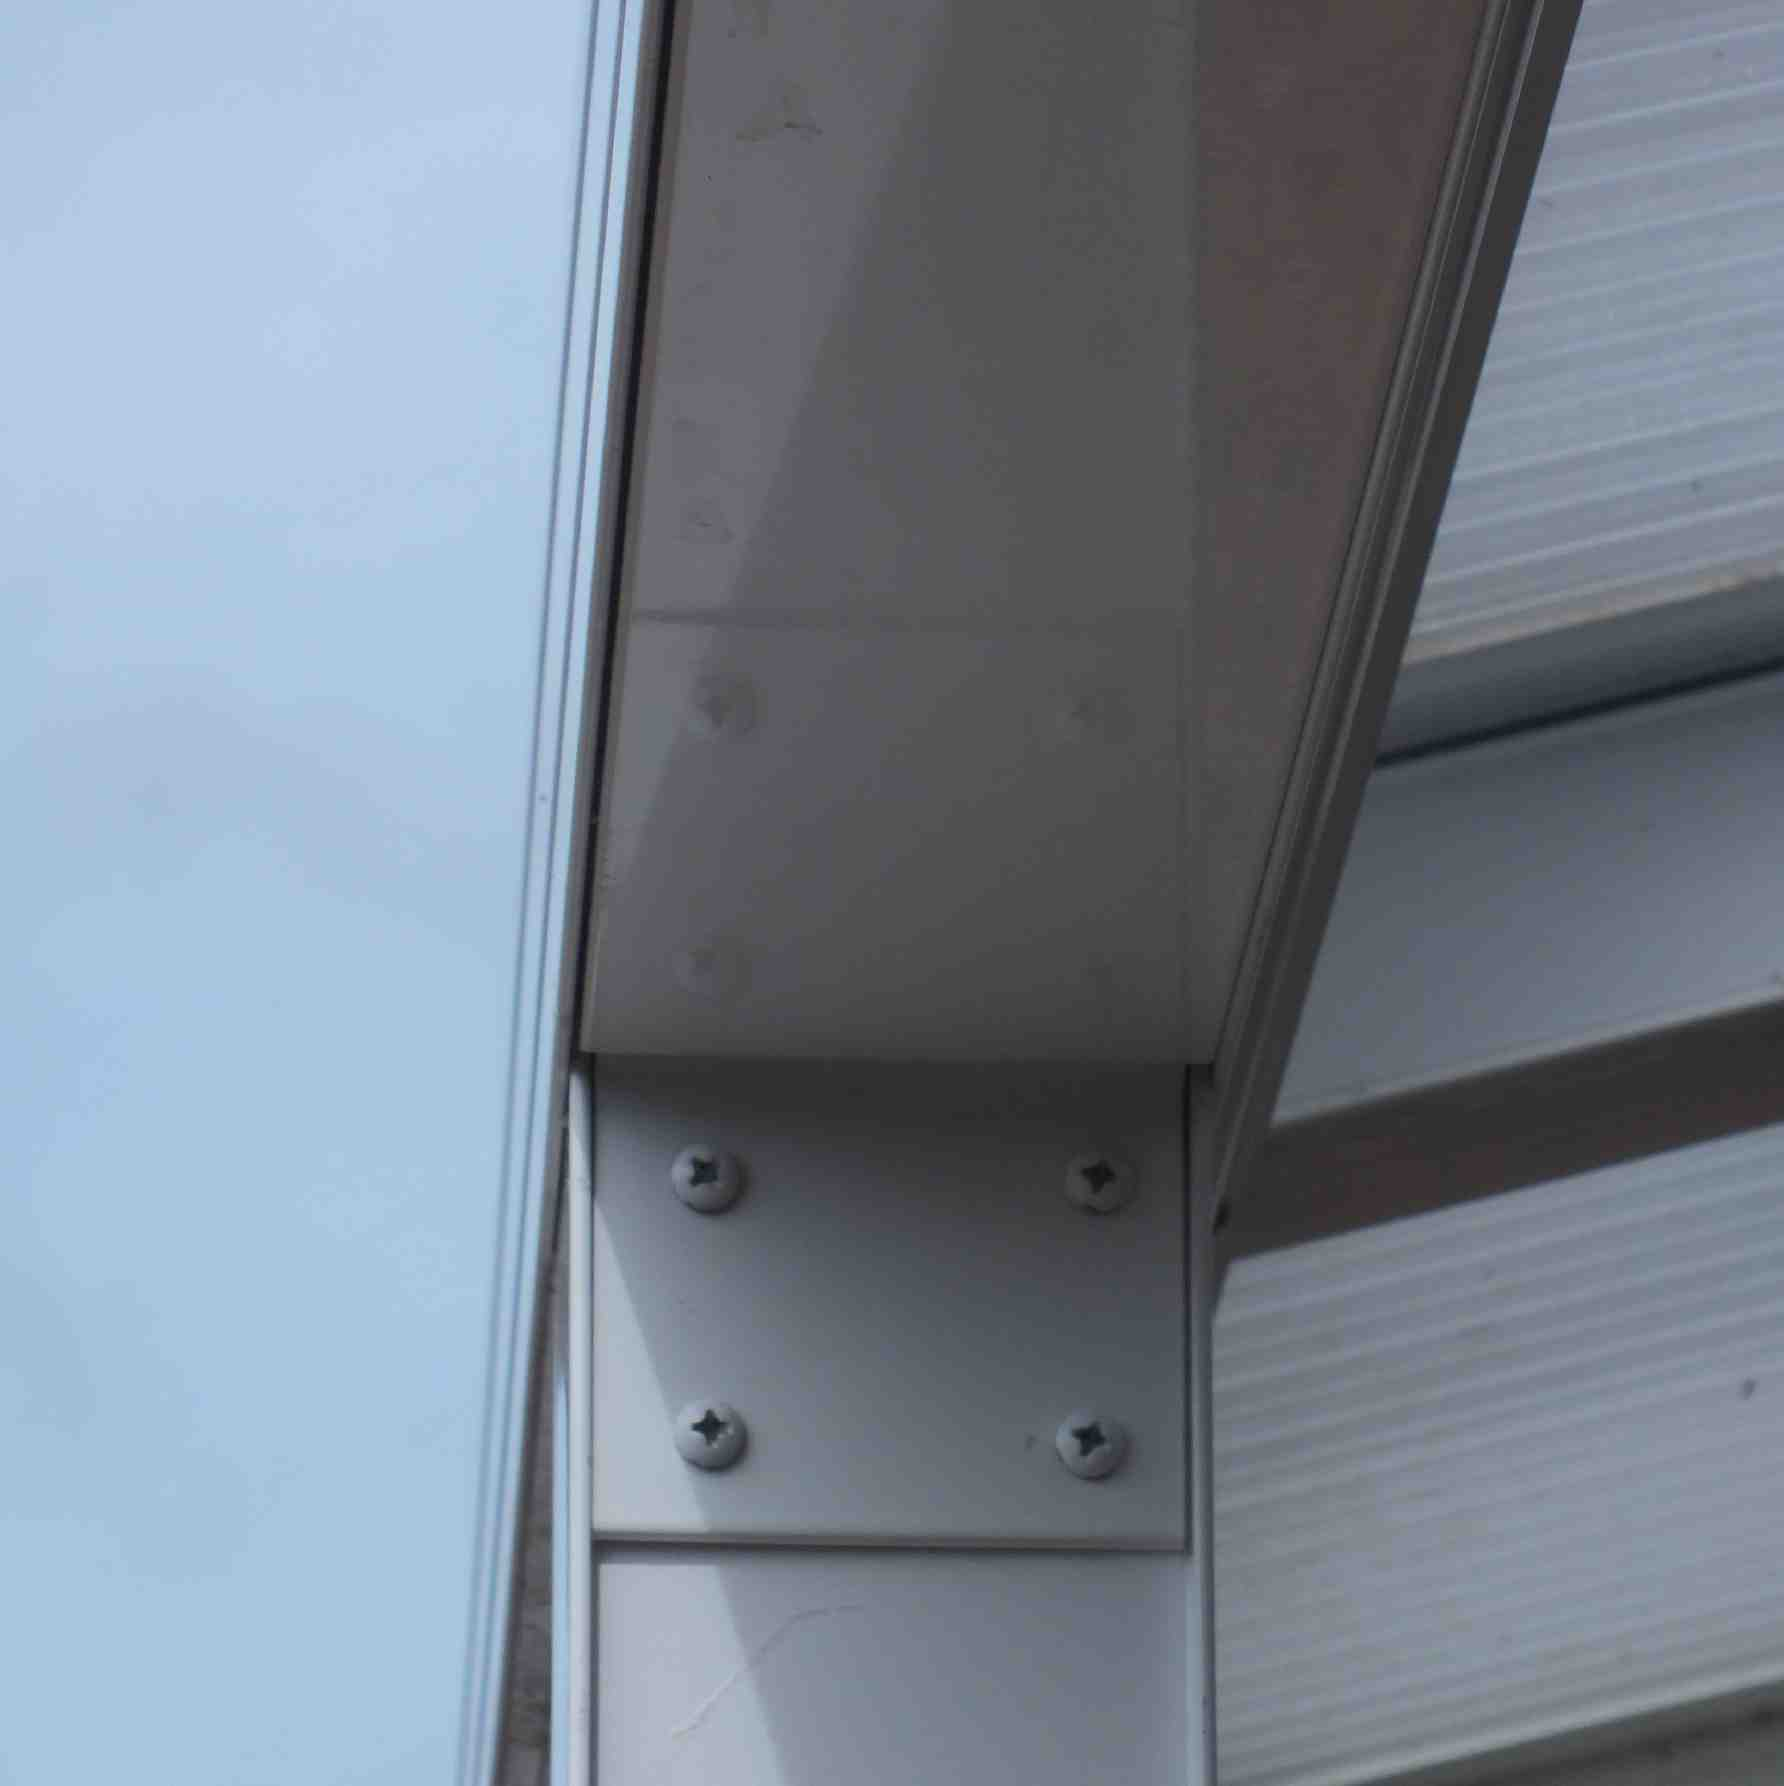 Affordable Omega Verandah with 16mm Polycarbonate Glazing - 8.4m (W) x 2.0m (P), (4) Supporting Posts